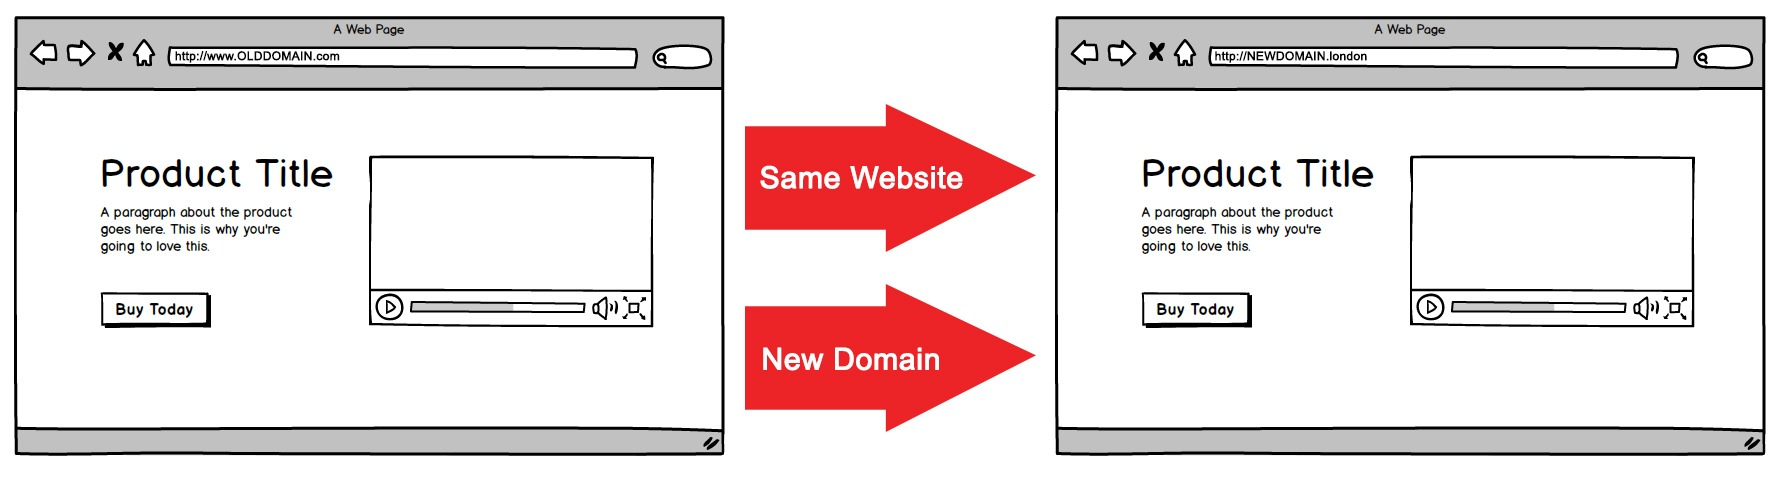 301 Redirect Website To New Domain